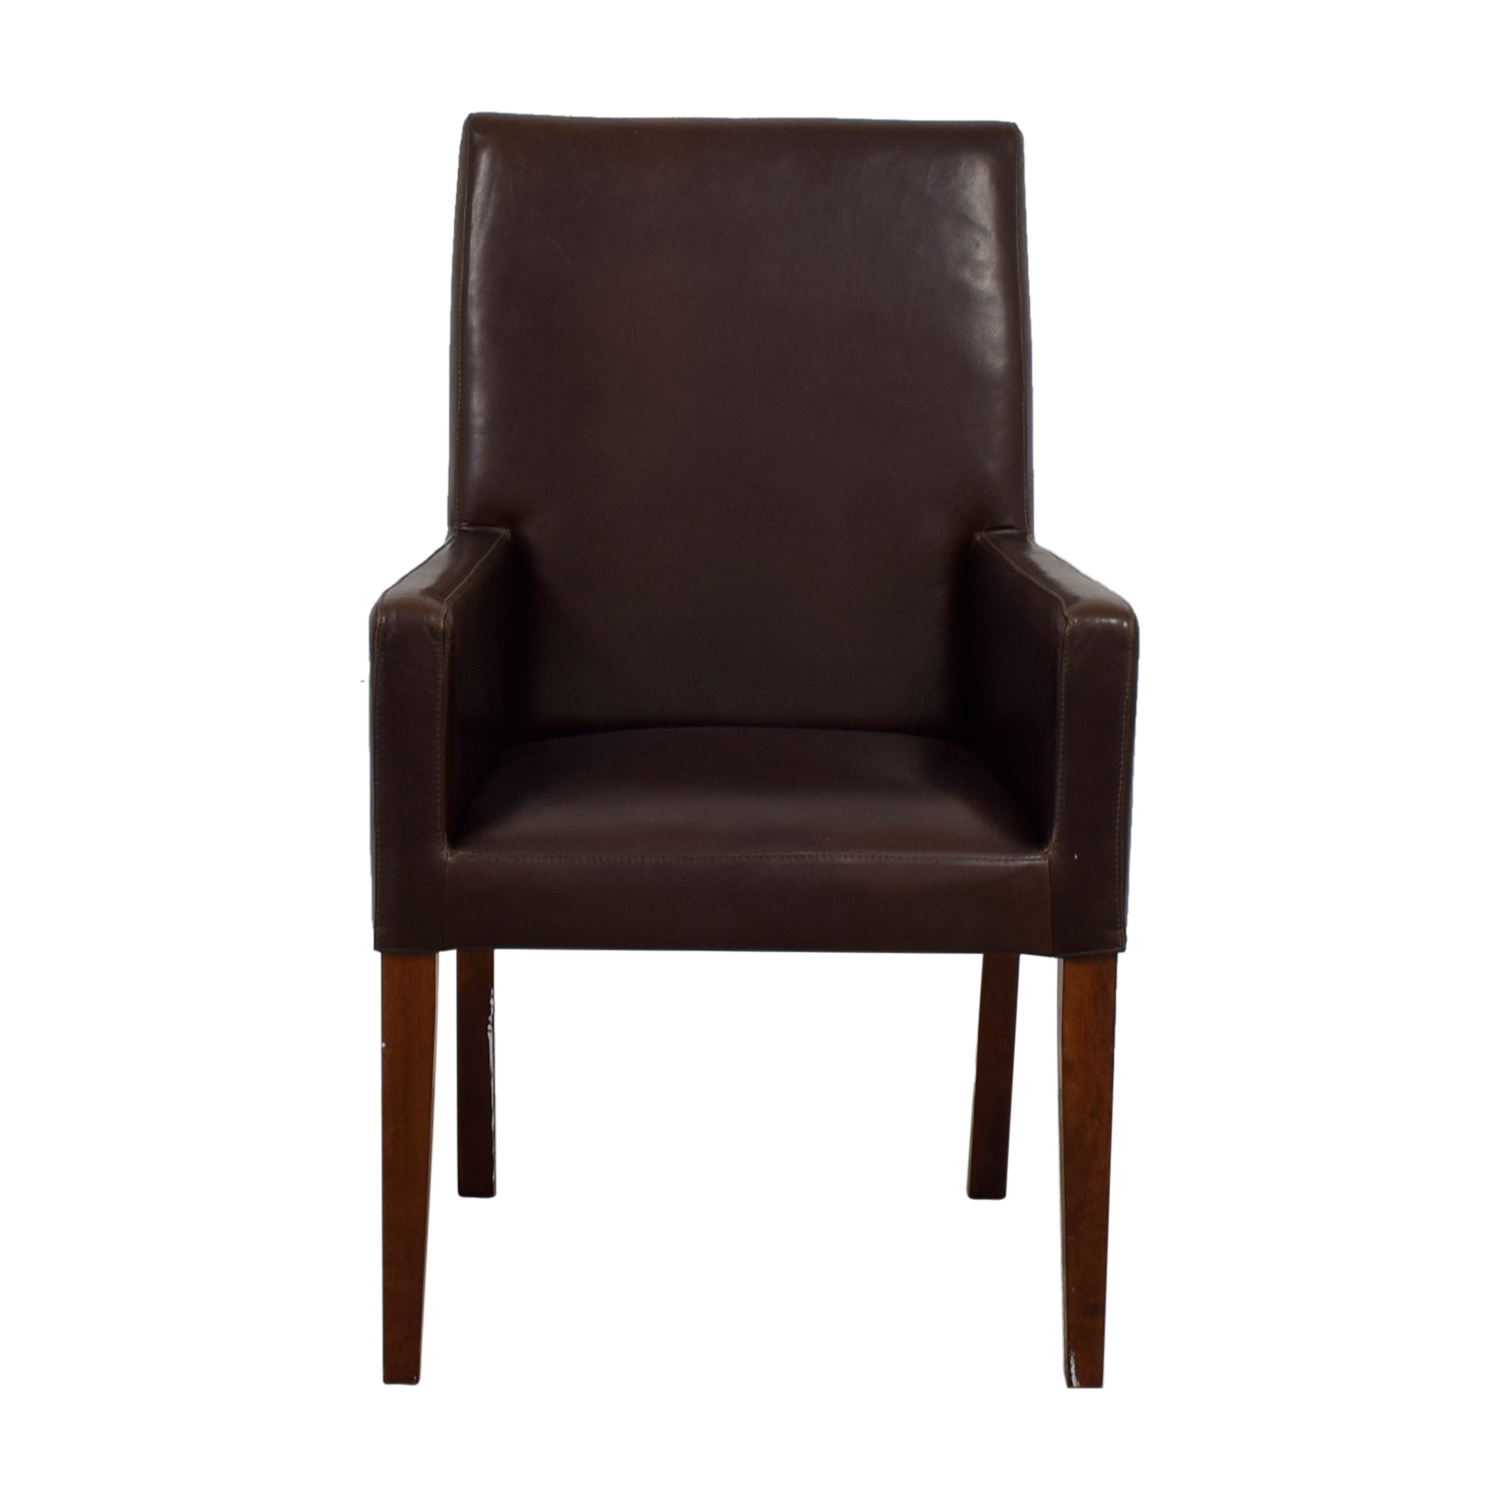 buy Pottery Barn Brown Leather Chair Pottery Barn